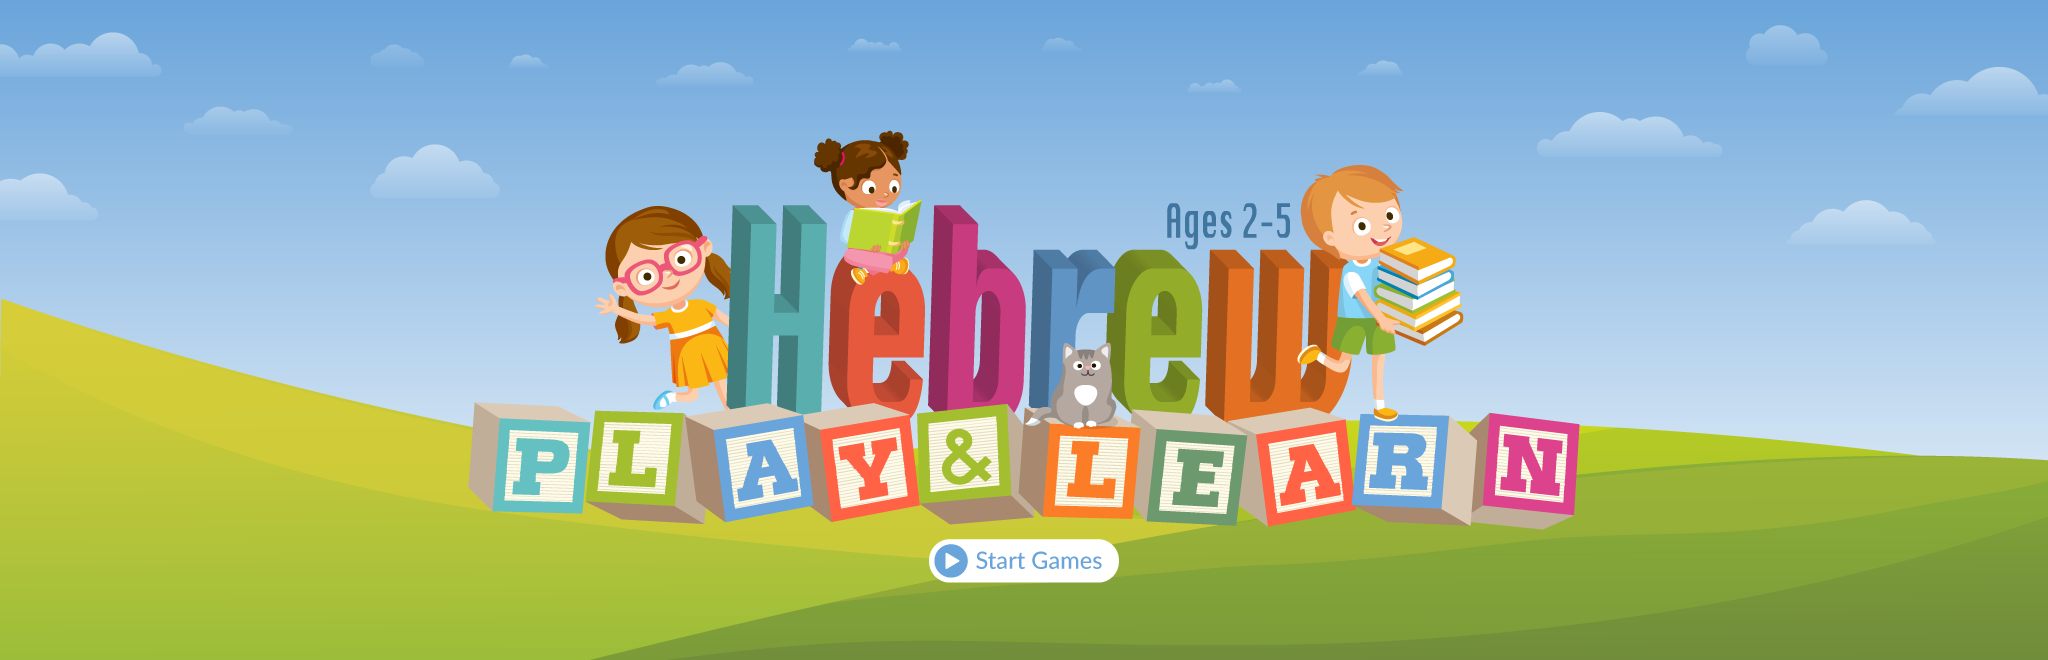 hebrew_play&learn_banner.png